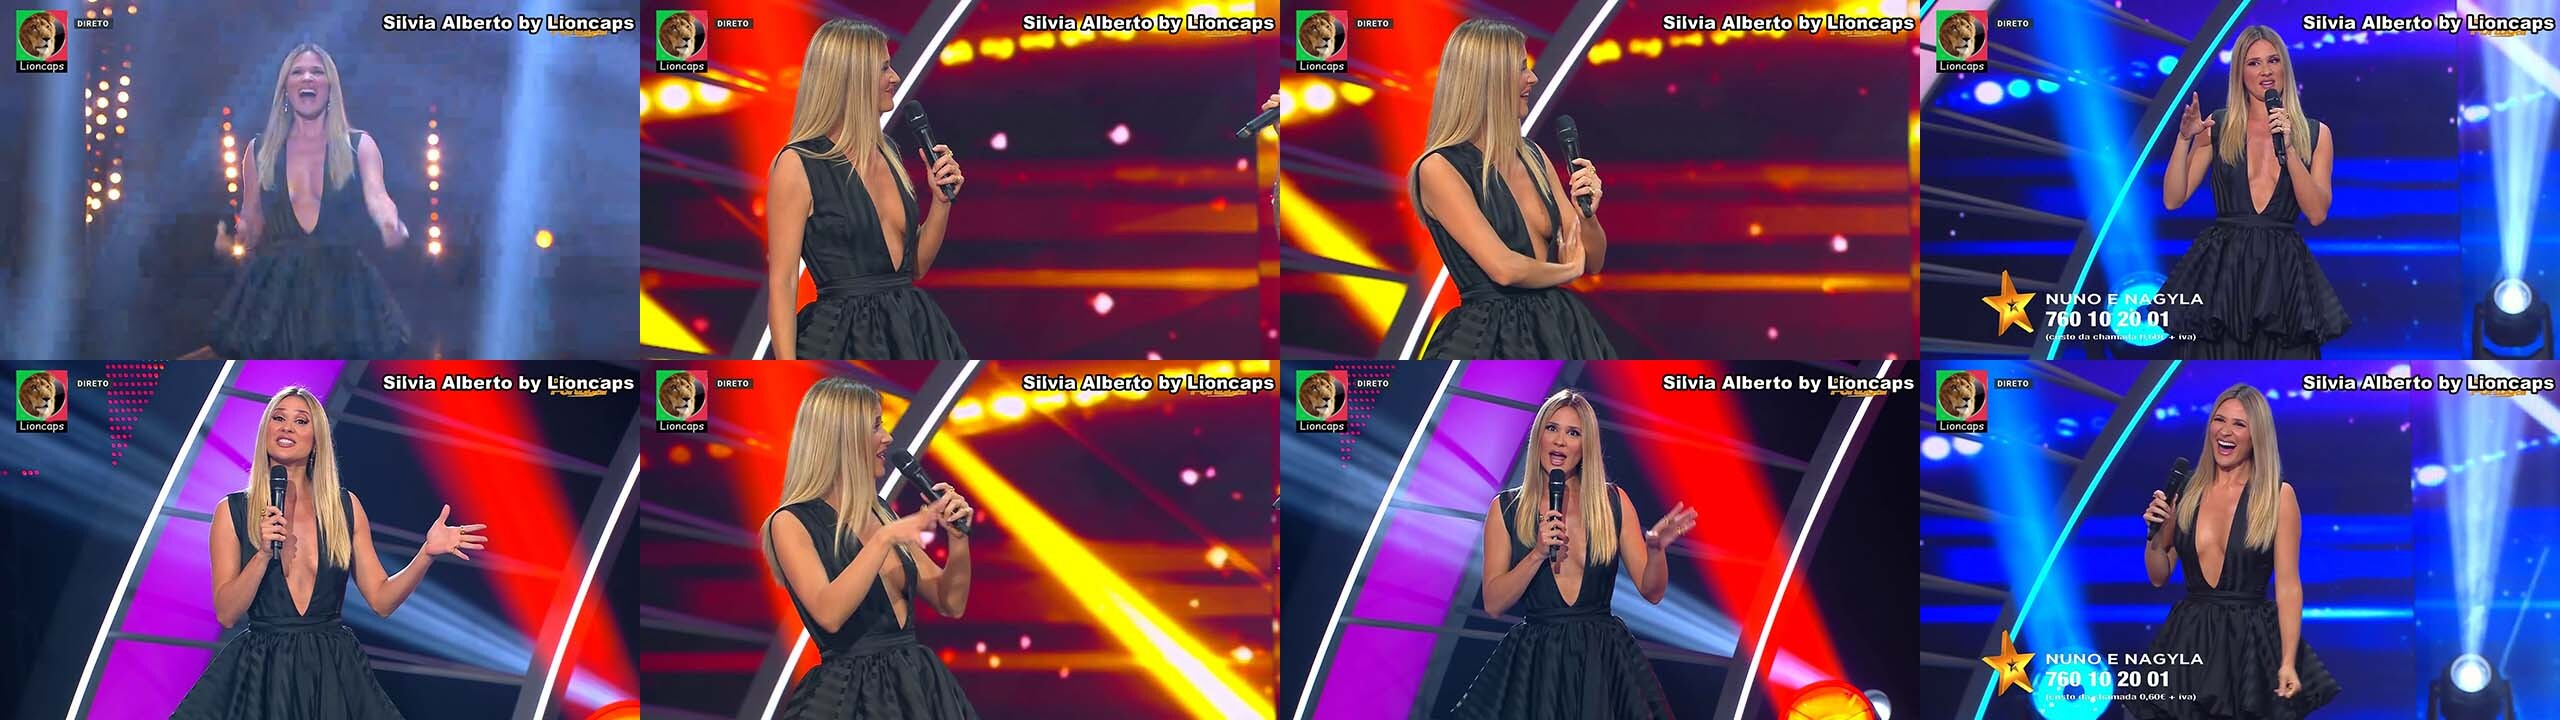 silvia_alberto_got_talent_lioncaps_05_06_2020.jpg